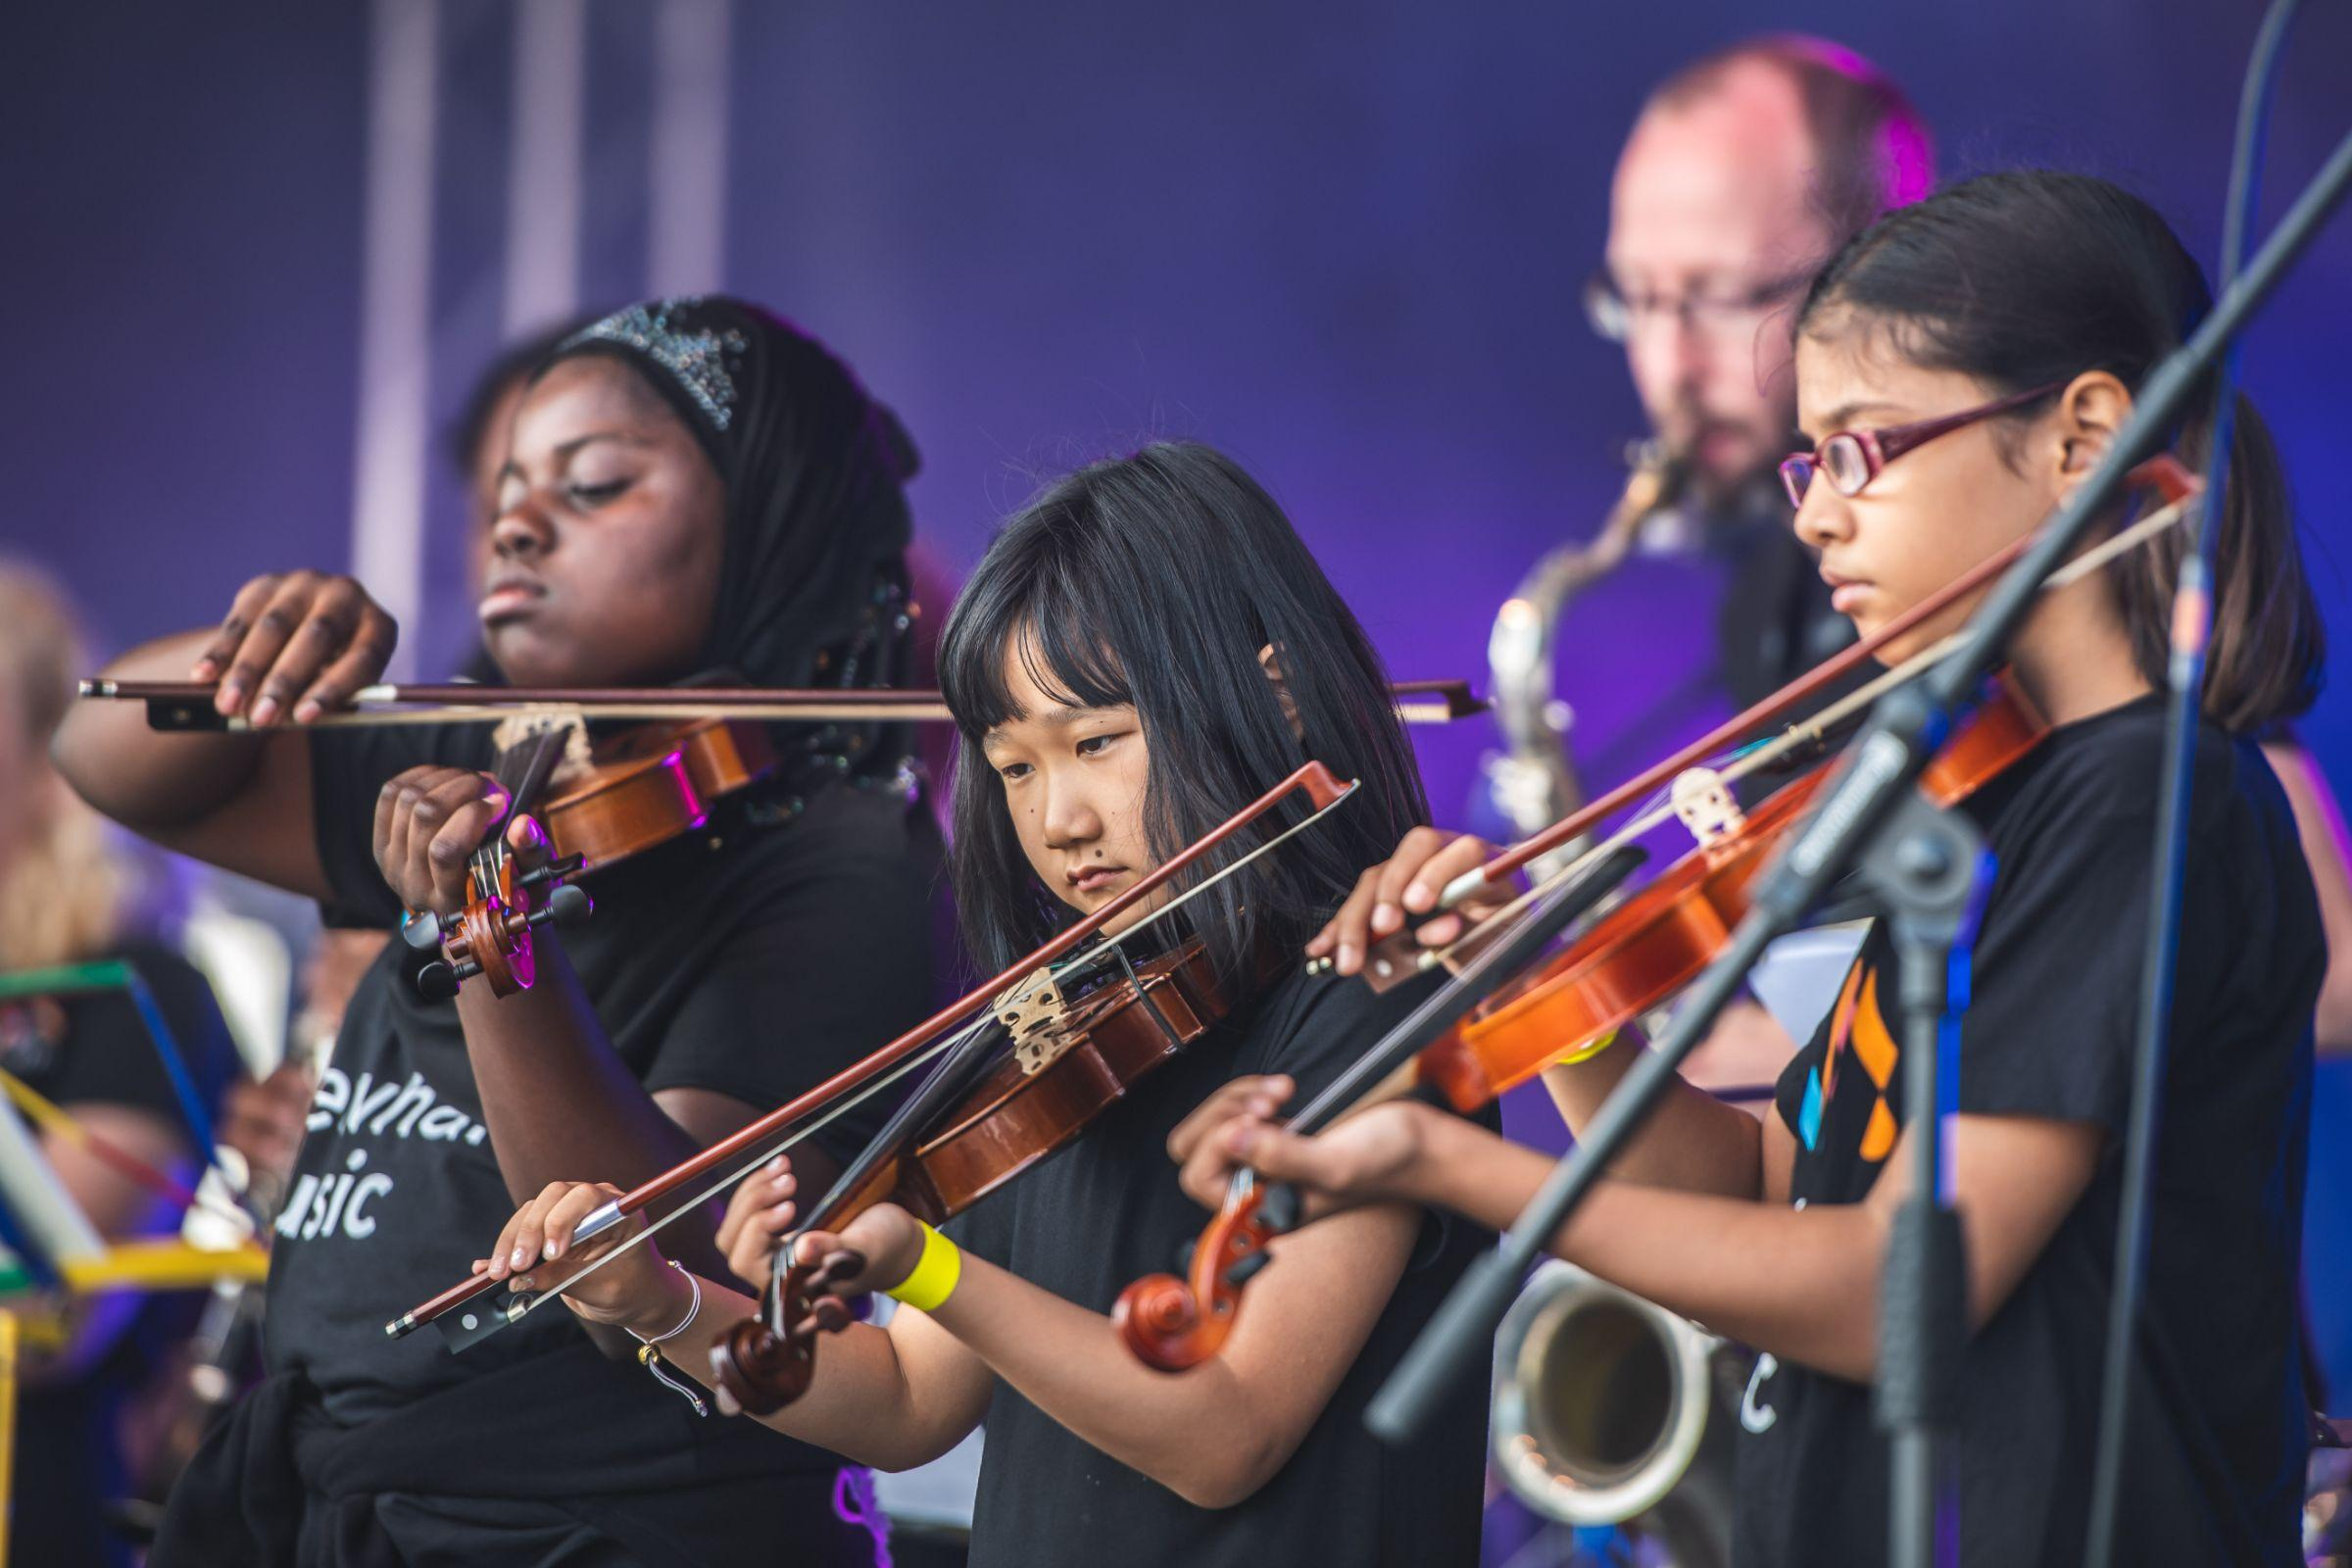 Three young performers playing the violin on stage